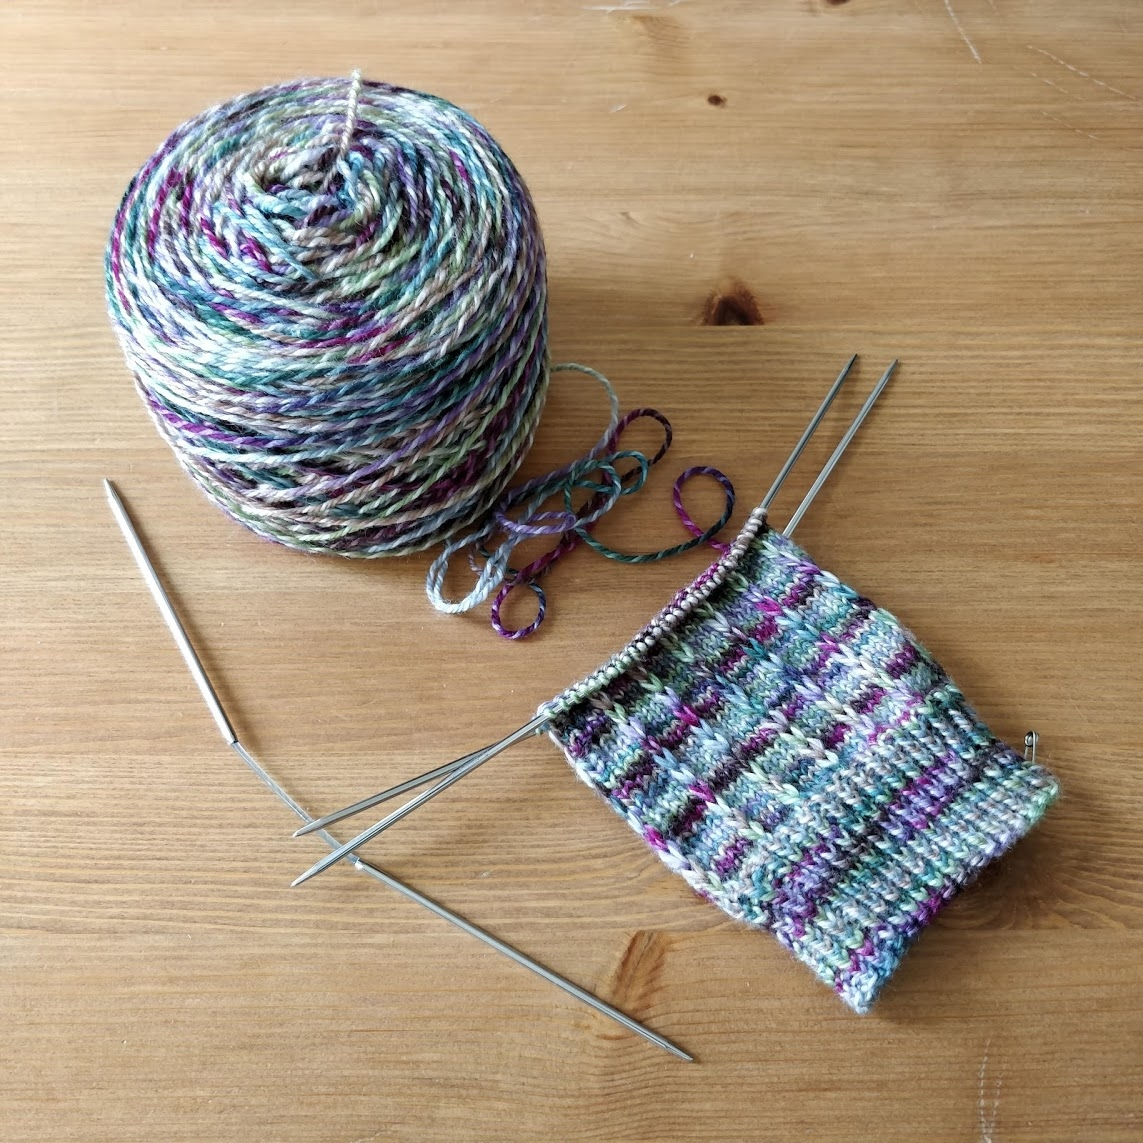 The start of a knitted sock leg on Flexi-Flip needles,with columns of slipped stitches on a stockinette background